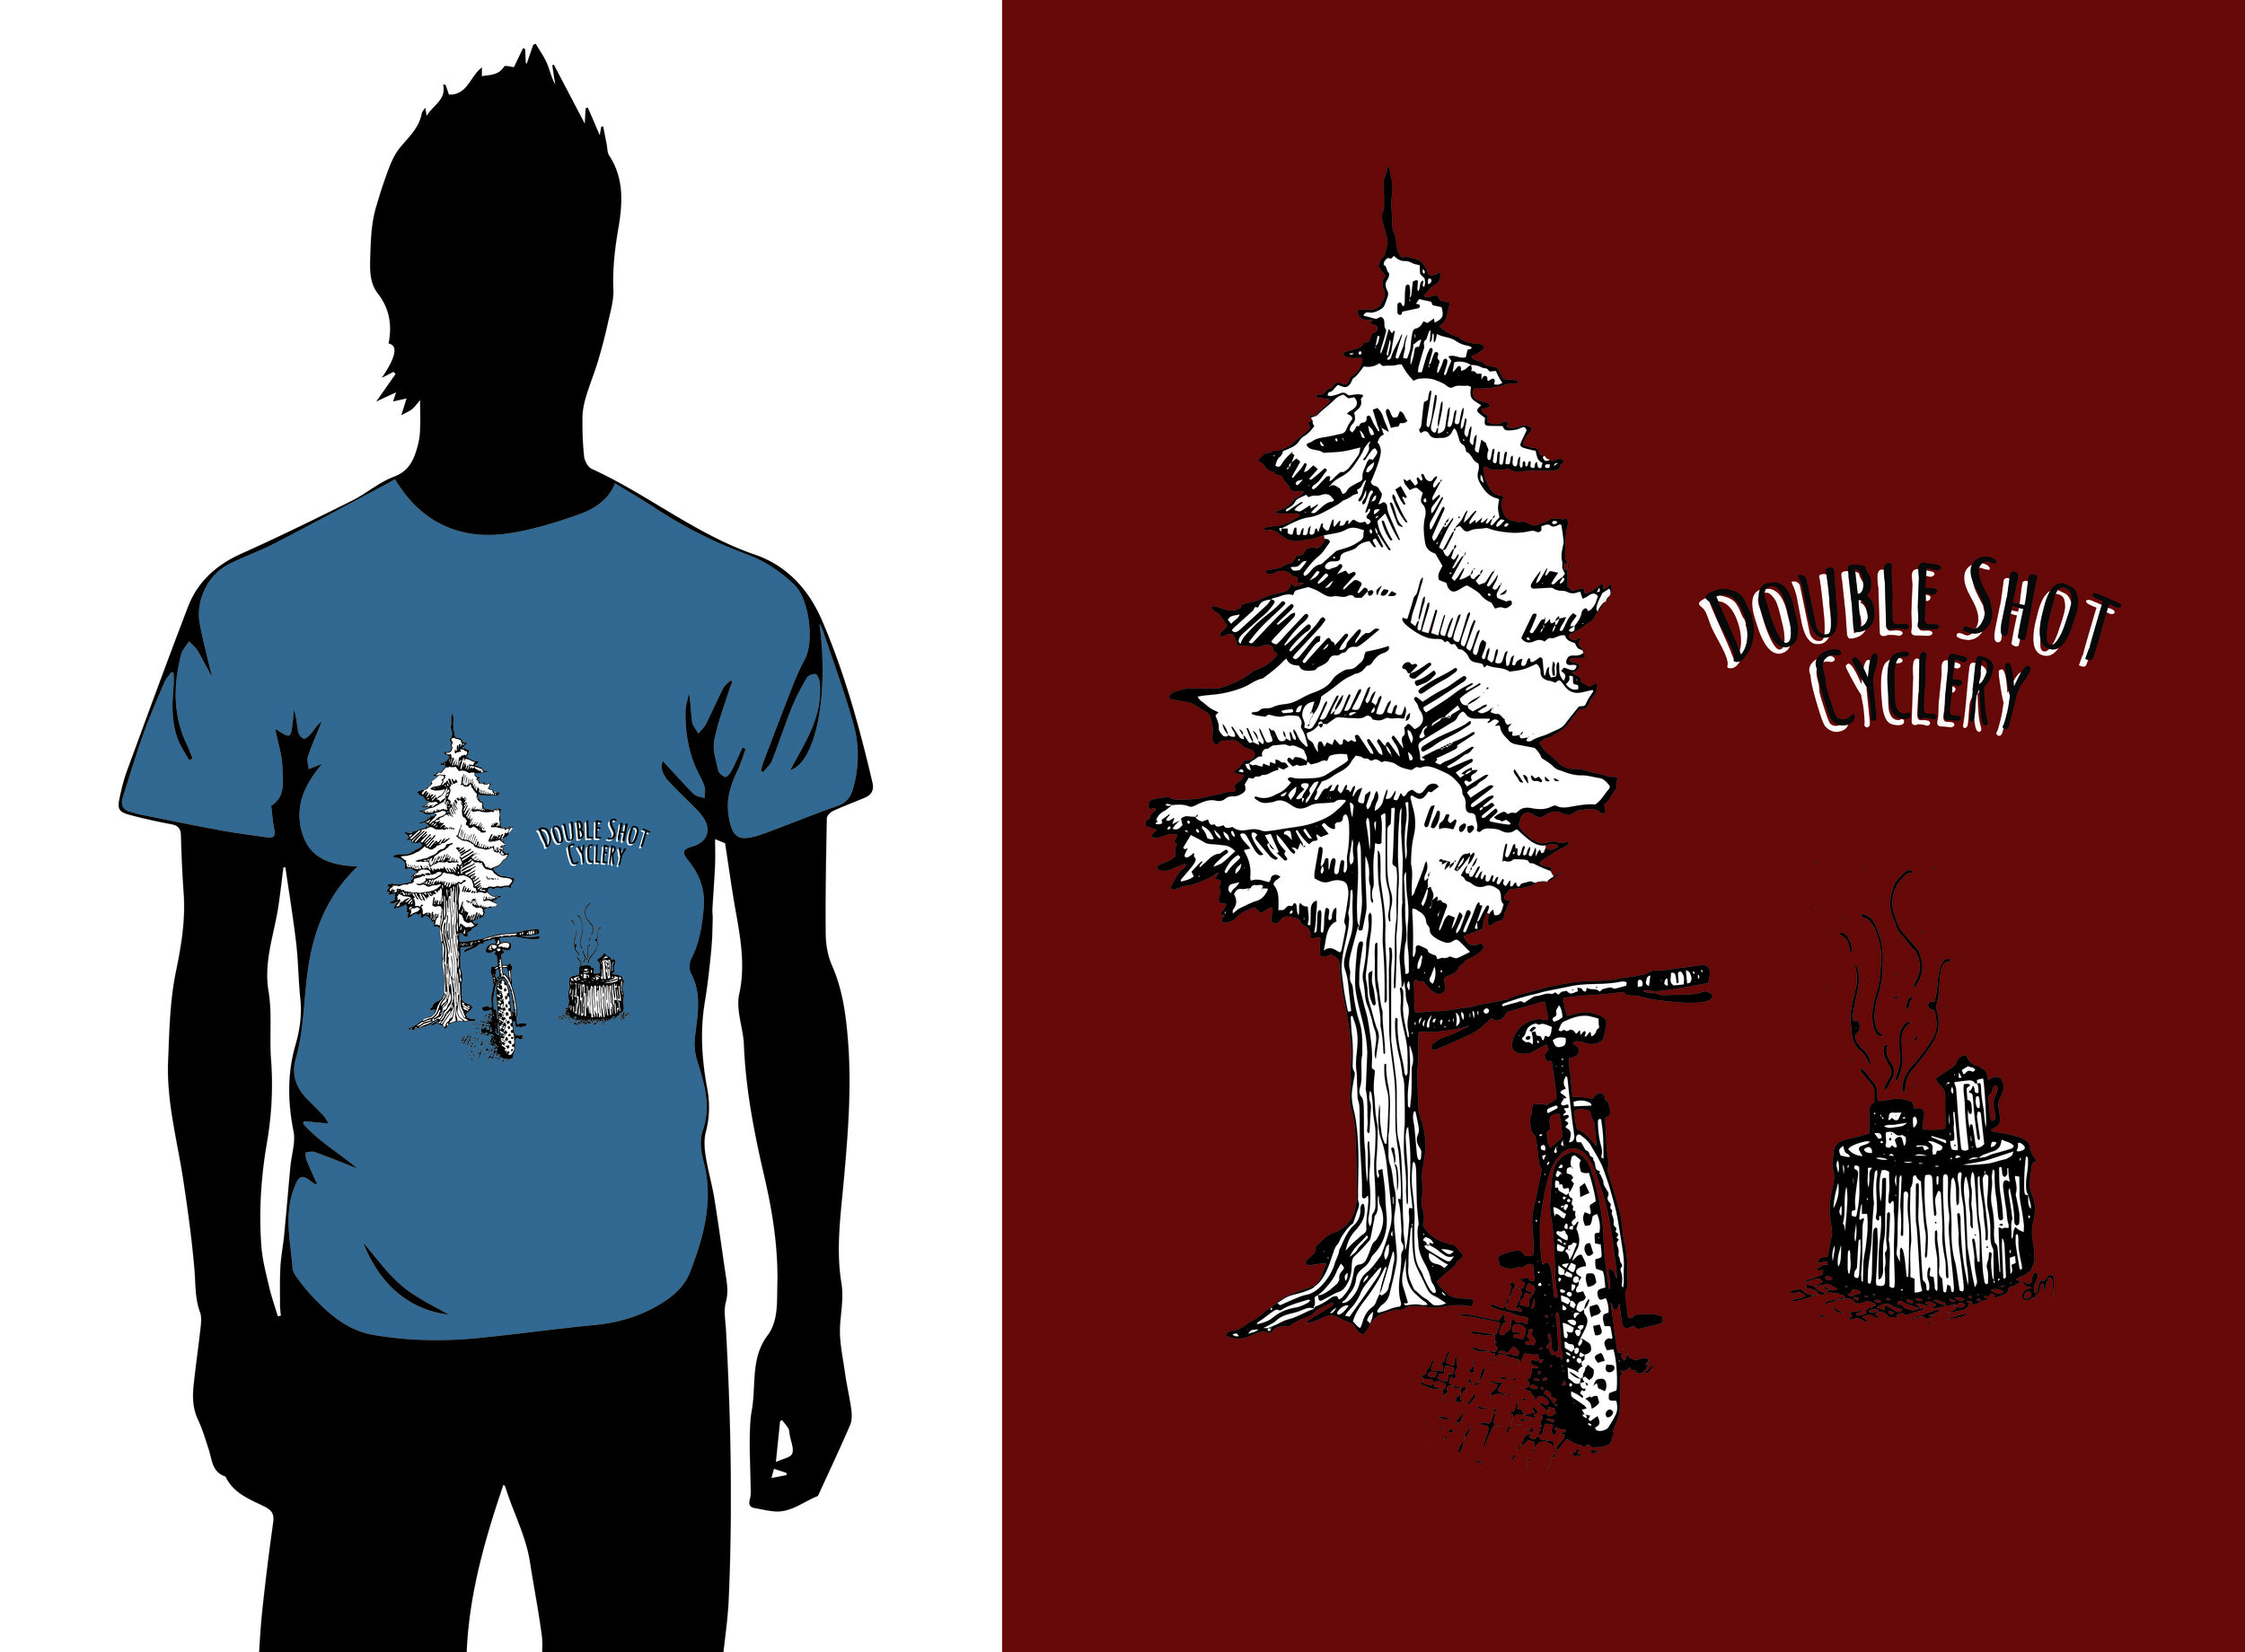 T-Shirt Design for Double Shot Cyclery.